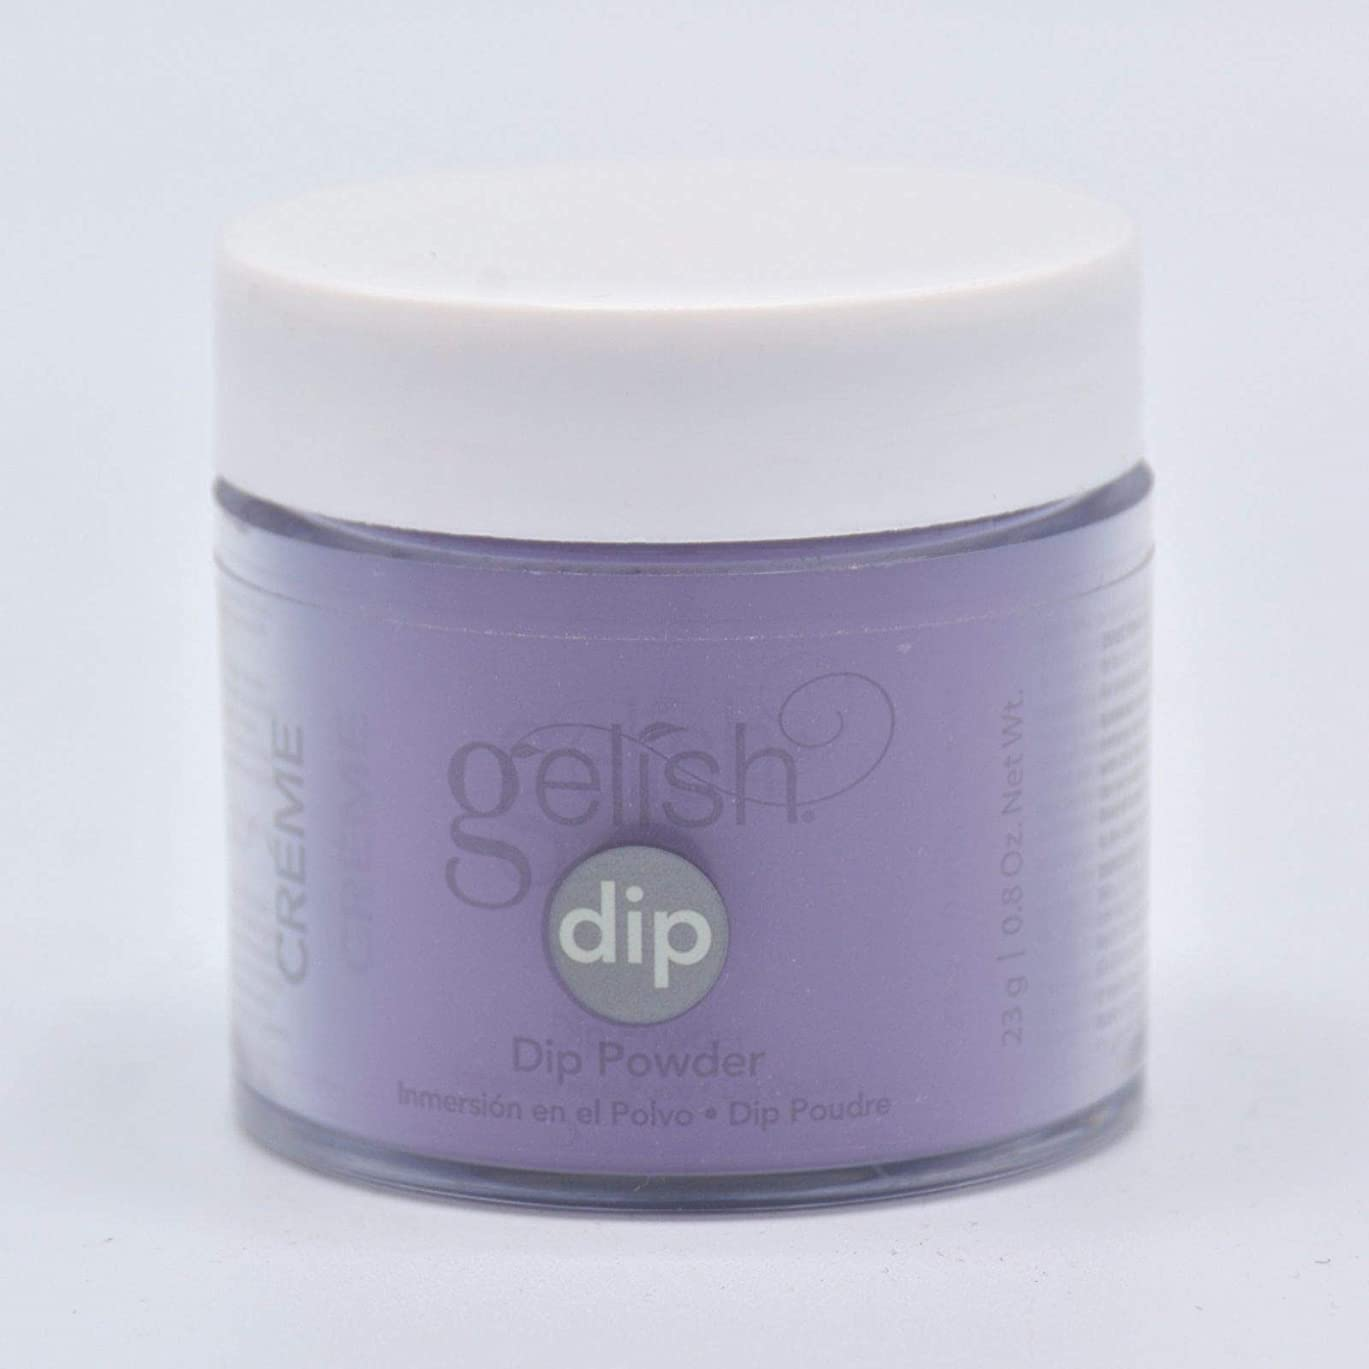 奨励ジェムなすHarmony Gelish - Acrylic Dip Powder - Black Cherry Berry - 23g / 0.8oz